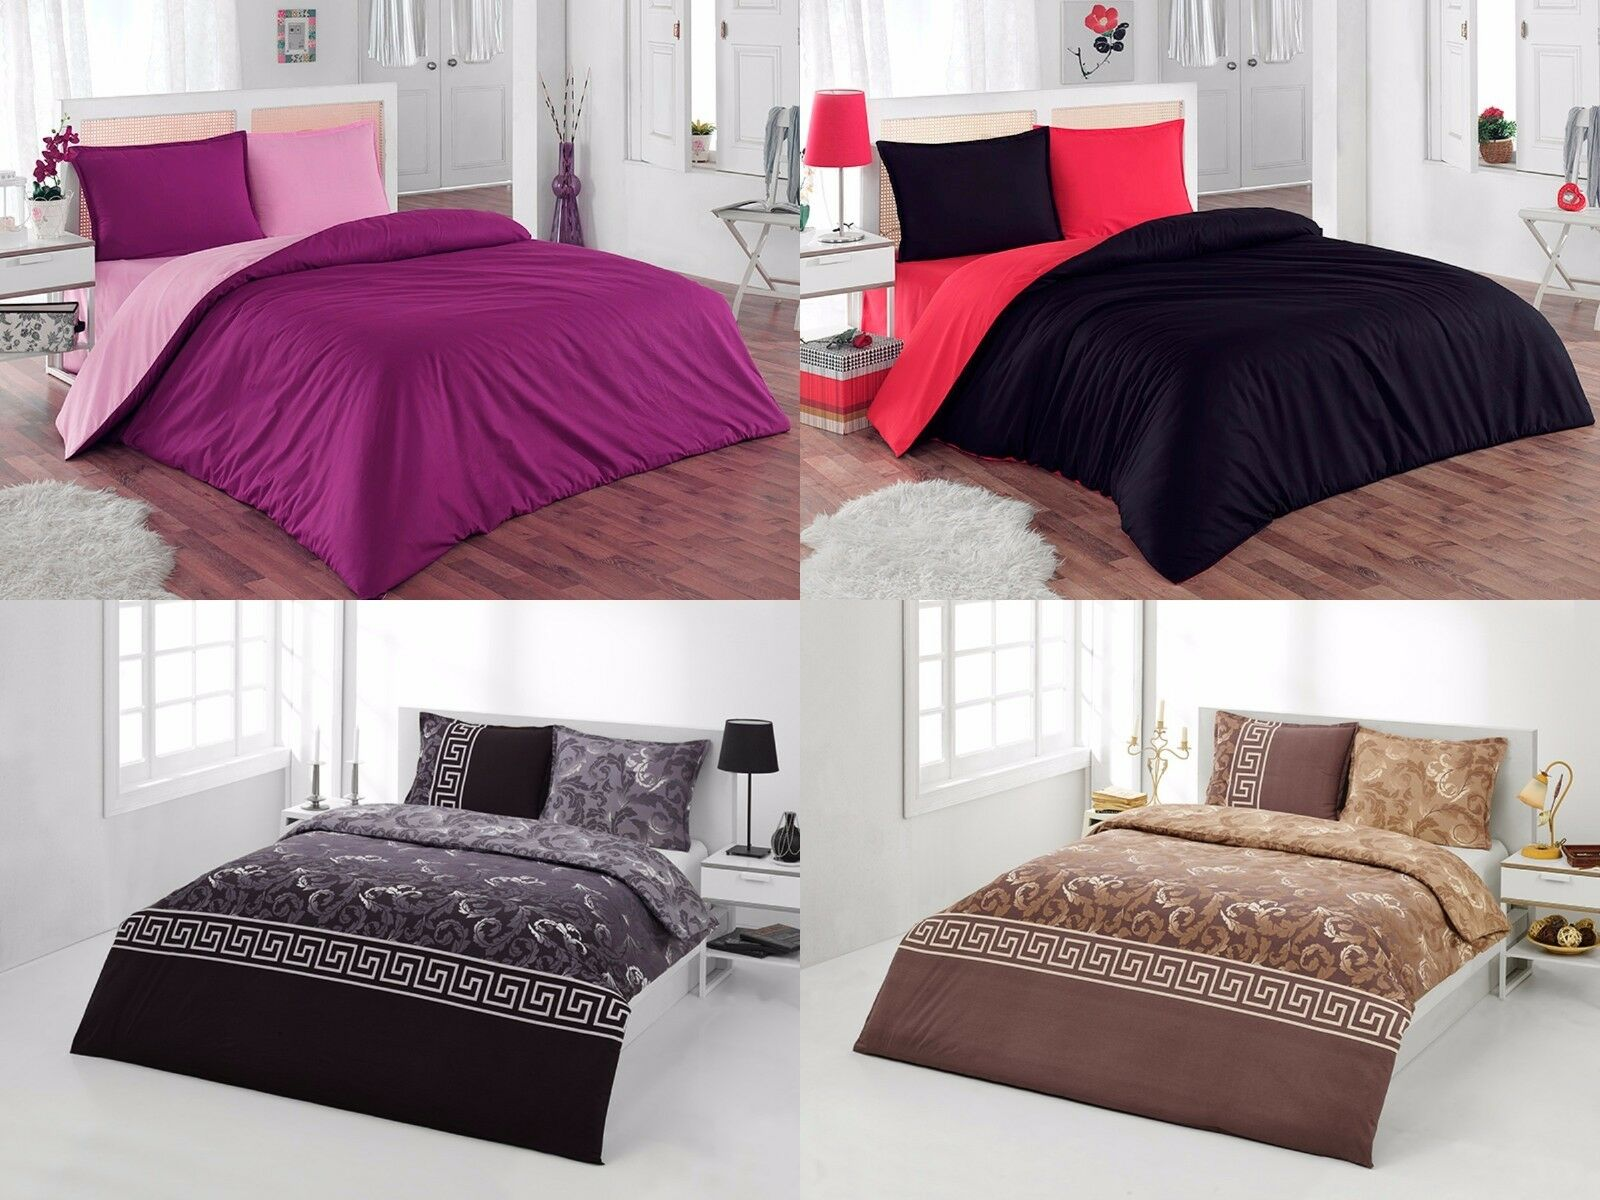 Duvet Cover & Pillow Sham Set